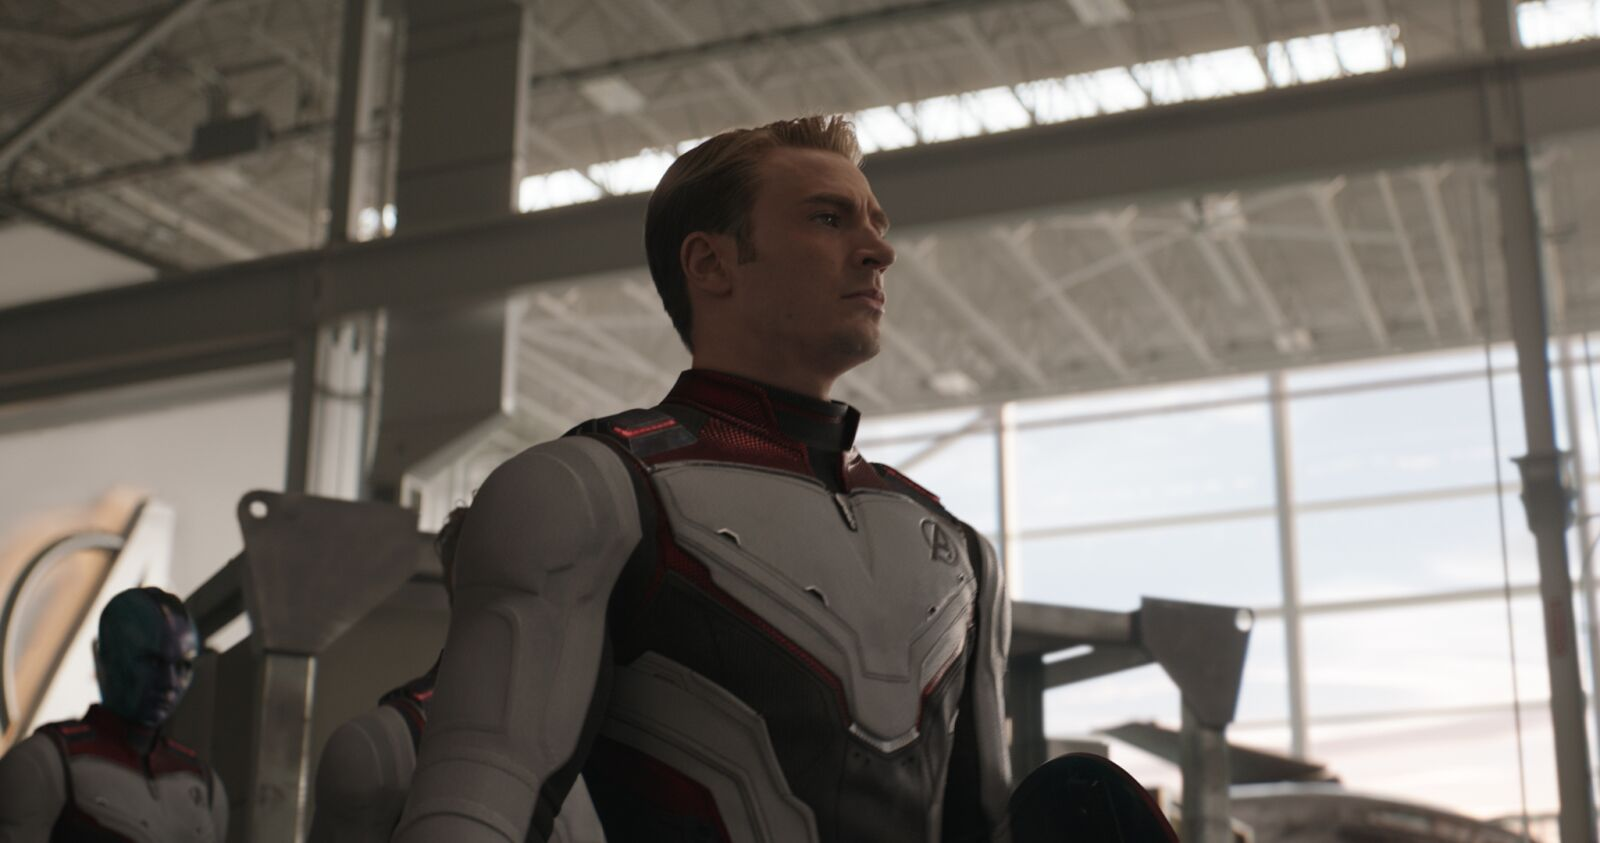 Captain America had a smaller role in Avengers: Infinity War for a reason